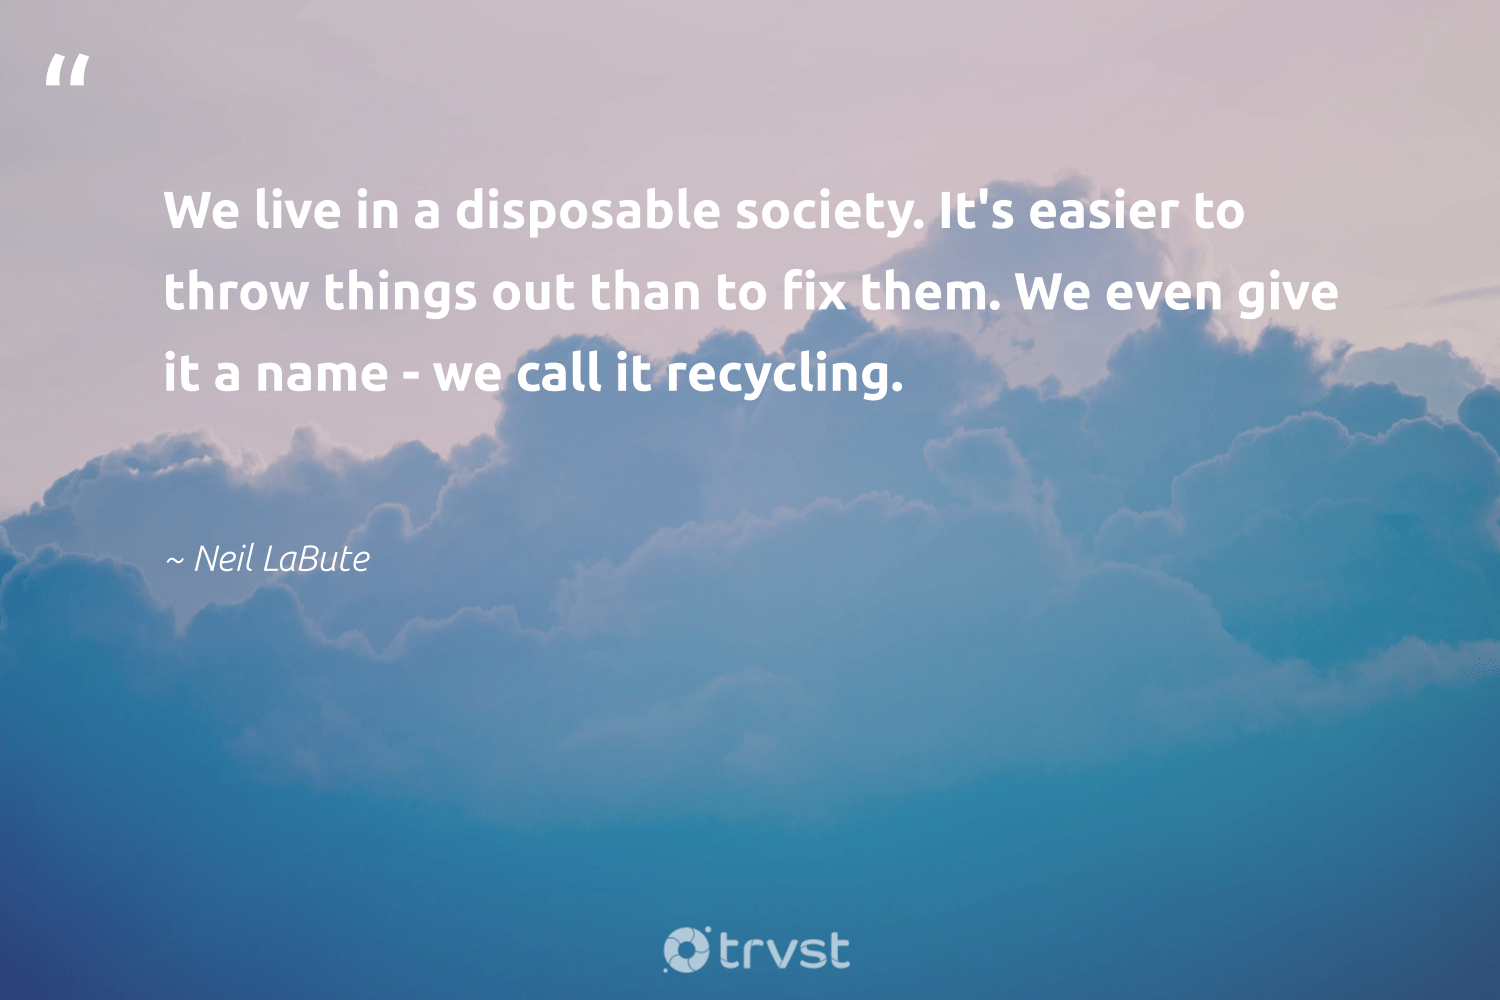 """""""We live in a disposable society. It's easier to throw things out than to fix them. We even give it a name - we call it recycling.""""  - Neil LaBute #trvst #quotes #recycling #society #refurbished #dosomething #wasteless #collectiveaction #reducereuserecycle #environment #thinkgreen #socialimpact"""